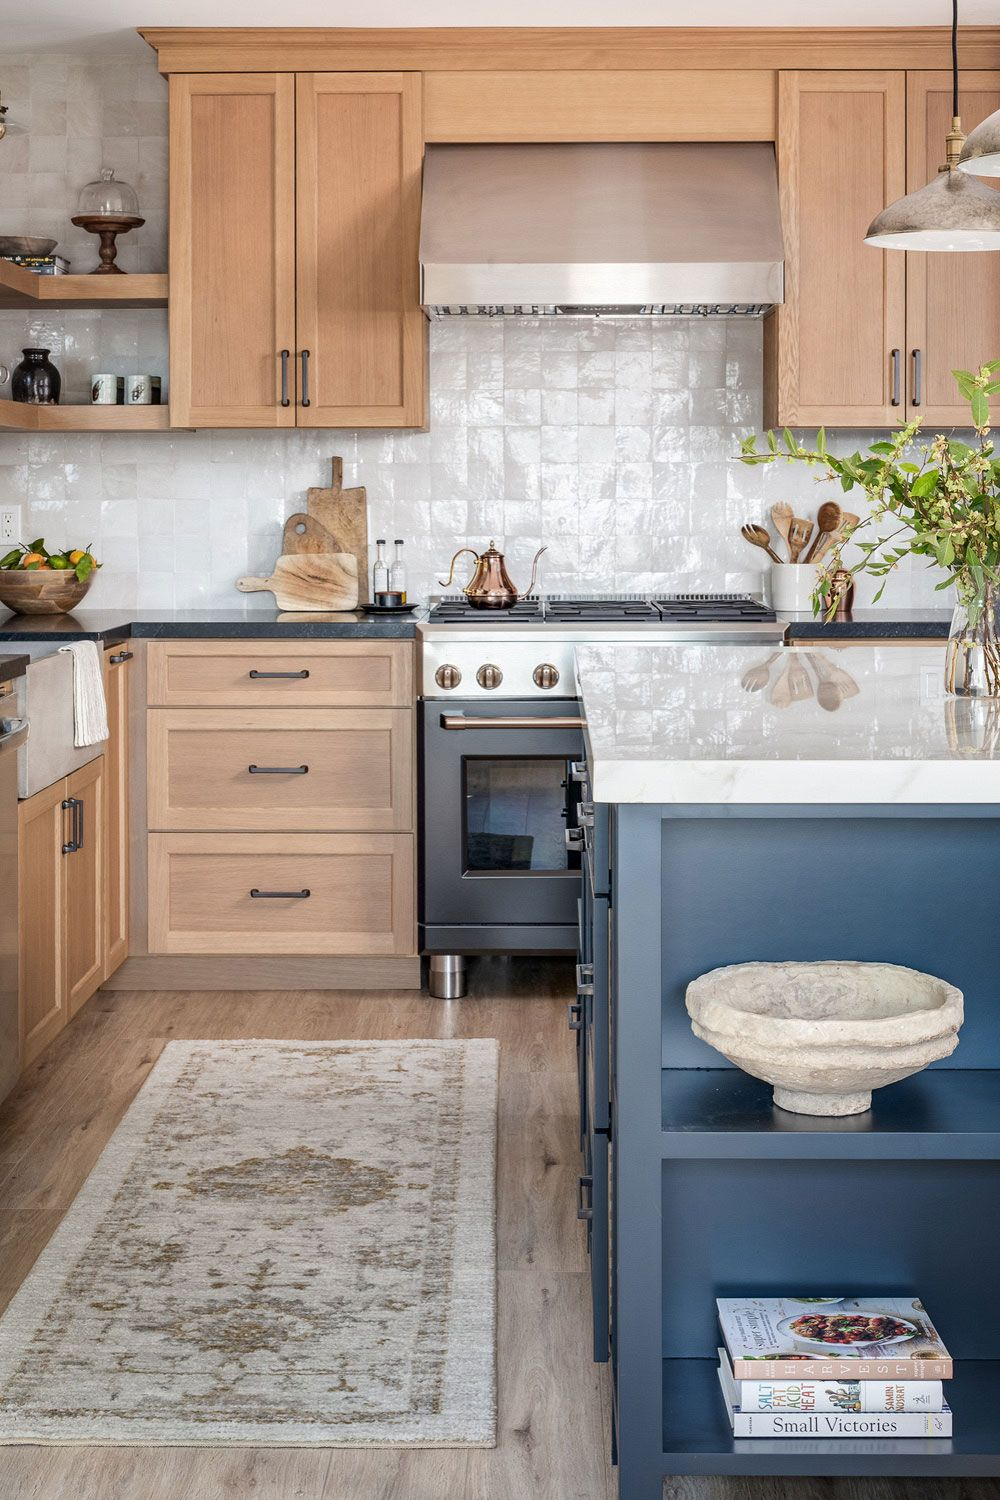 53+ Two Tone Kitchen Cabinets ( STYLISH & TRENDY ) - Cabinet Designs